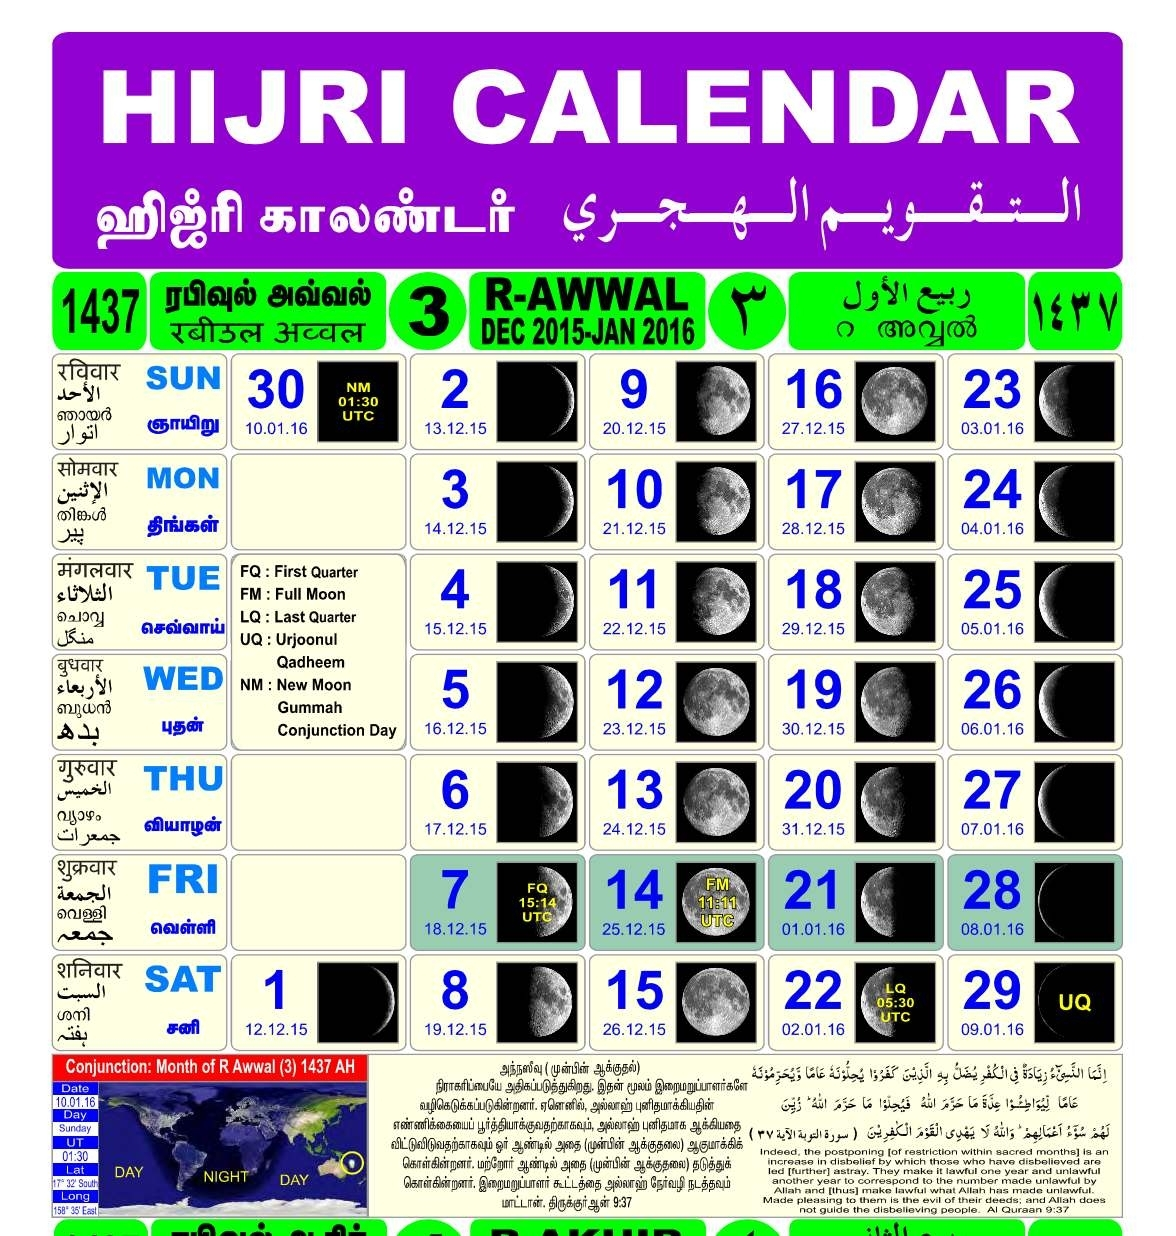 Islamic Month Discussions In English: Hijri Calendar For The Year 1437 pertaining to Islamic Calendar 2015 Pdf Free Download